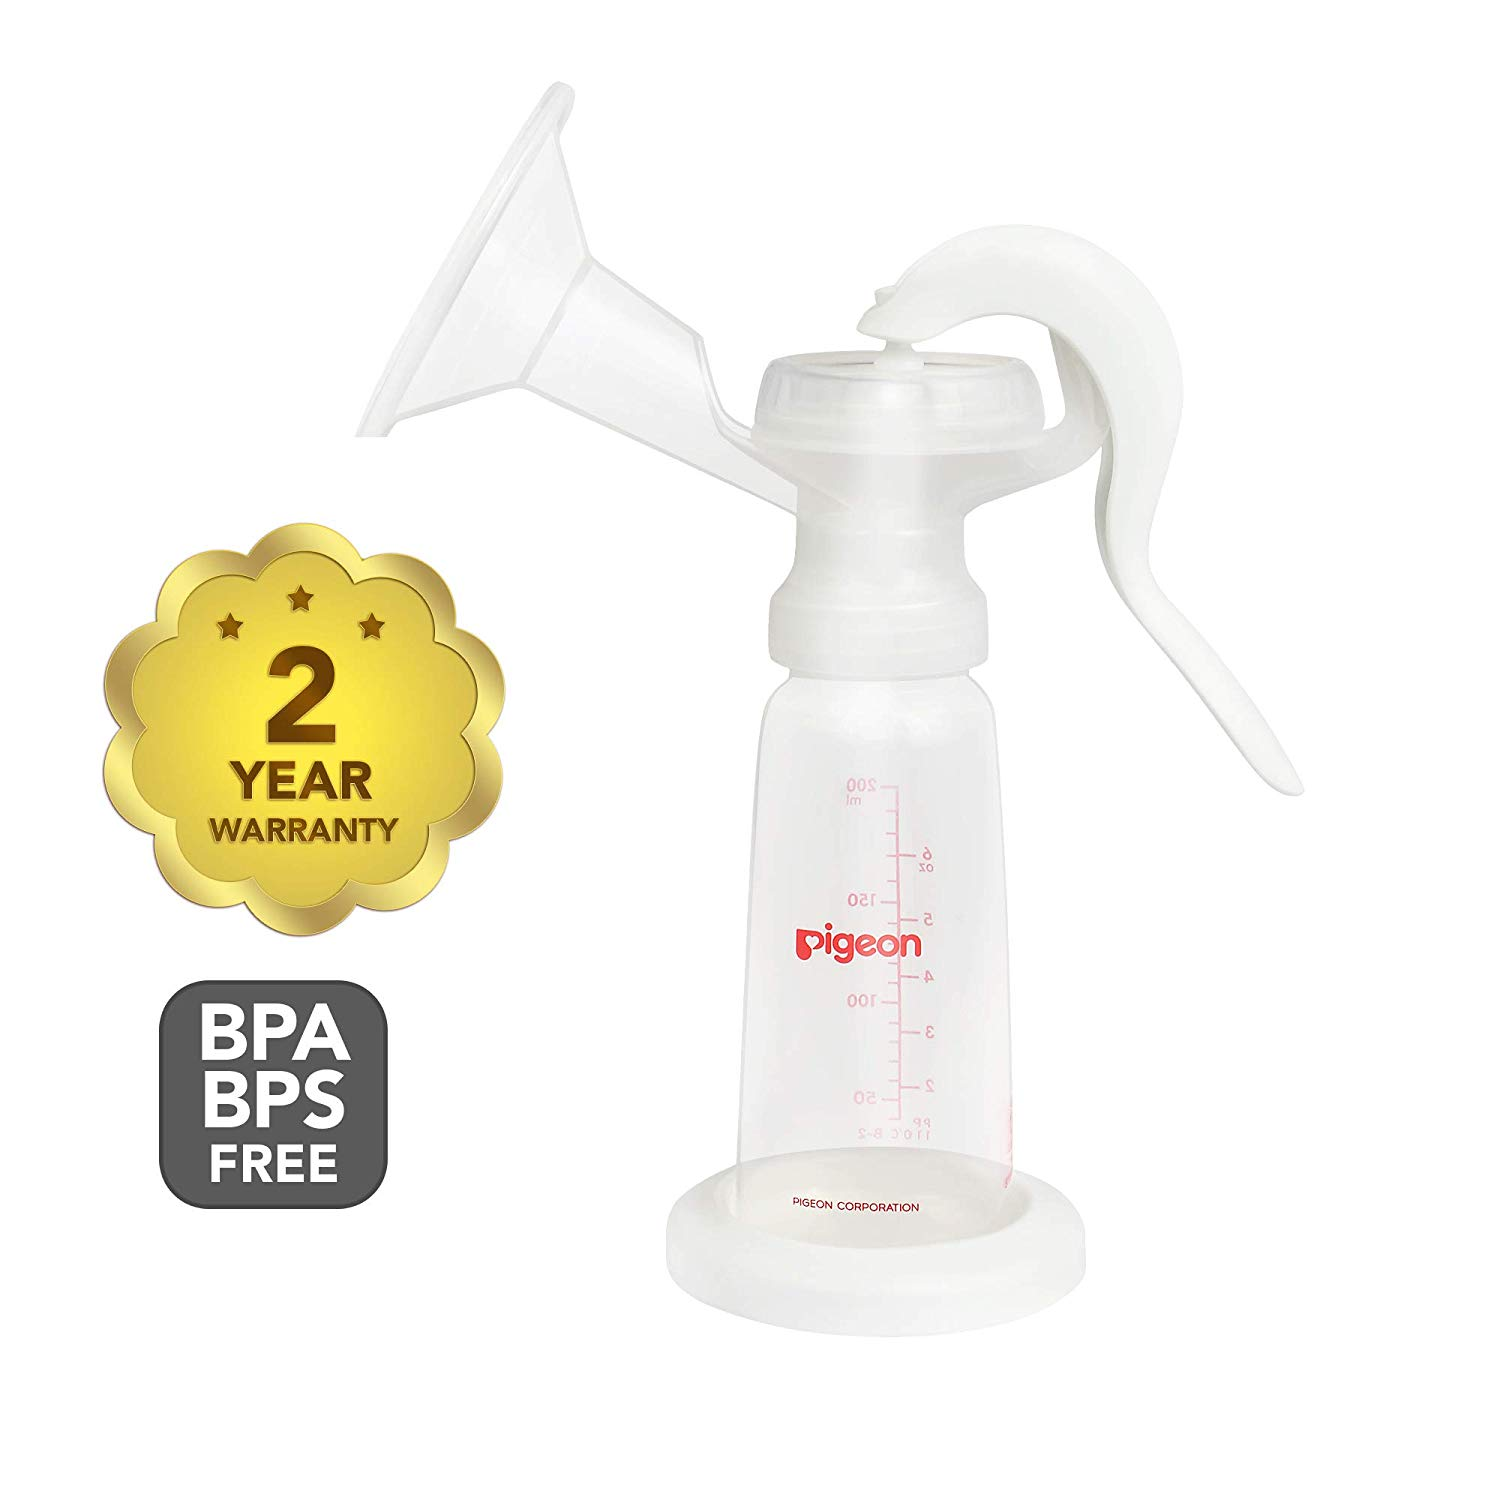 Pigeon Breast Pump